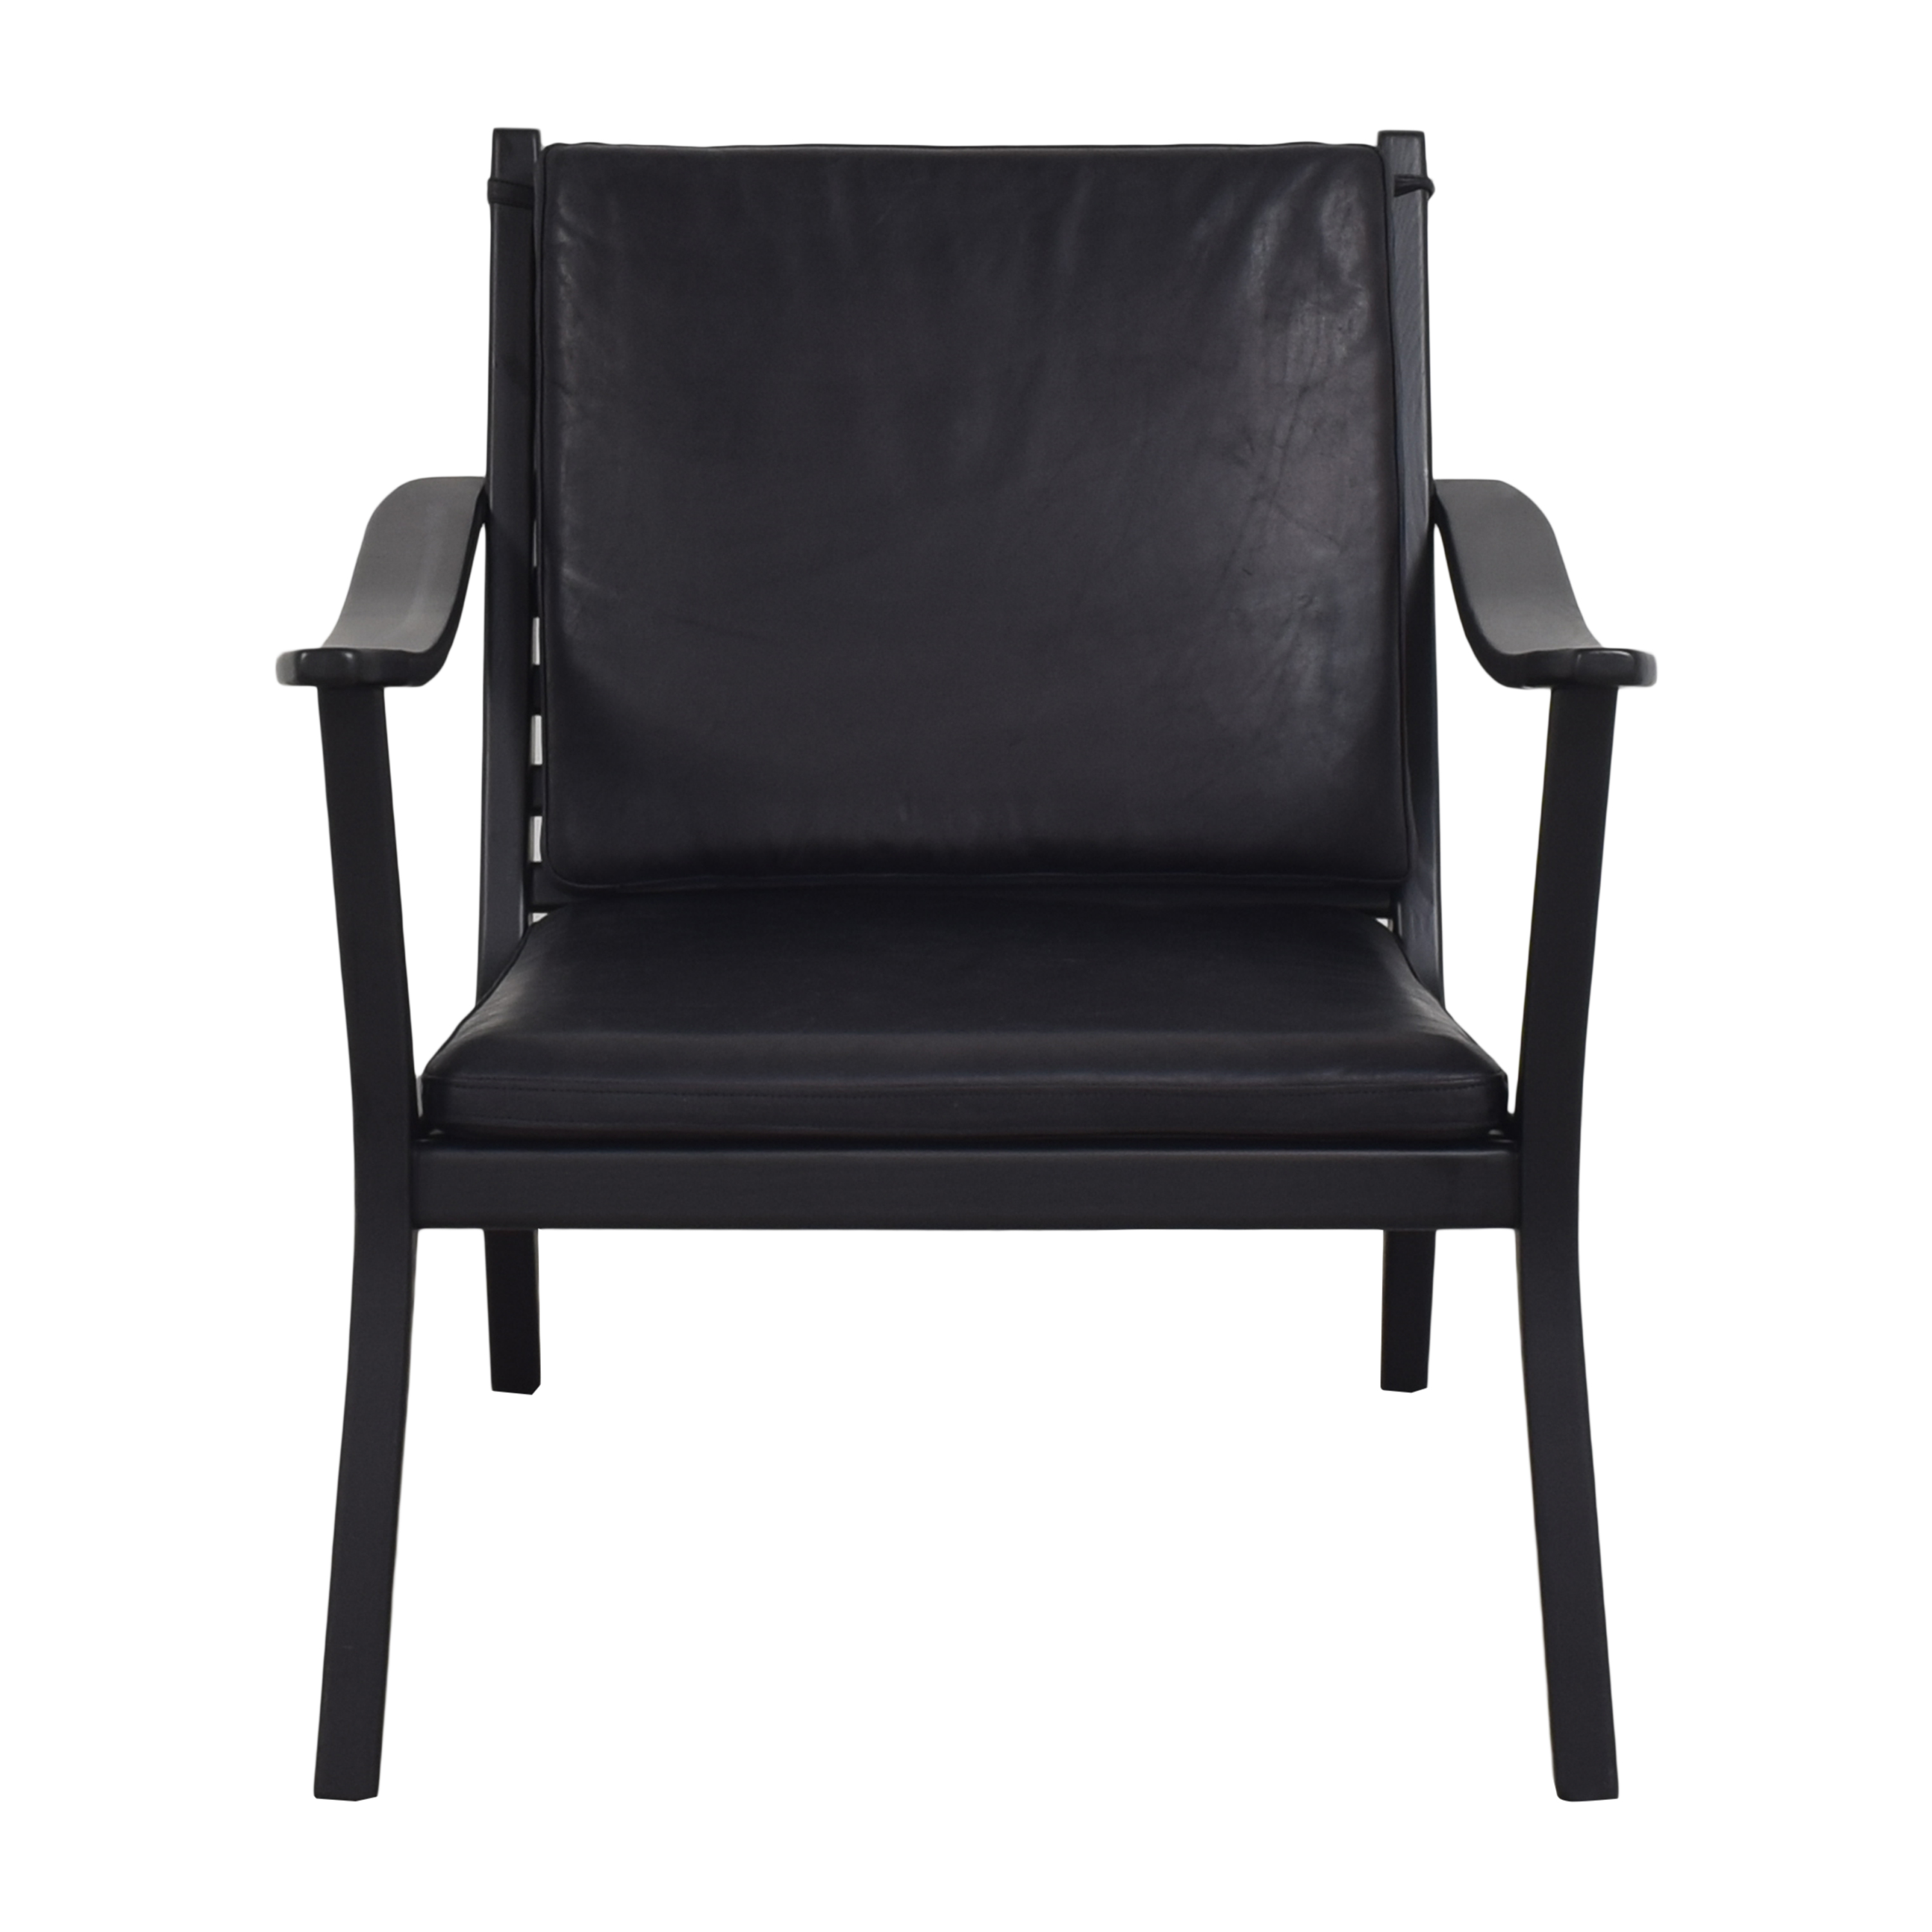 CB2 CB2 Parlay Lounge Chair discount